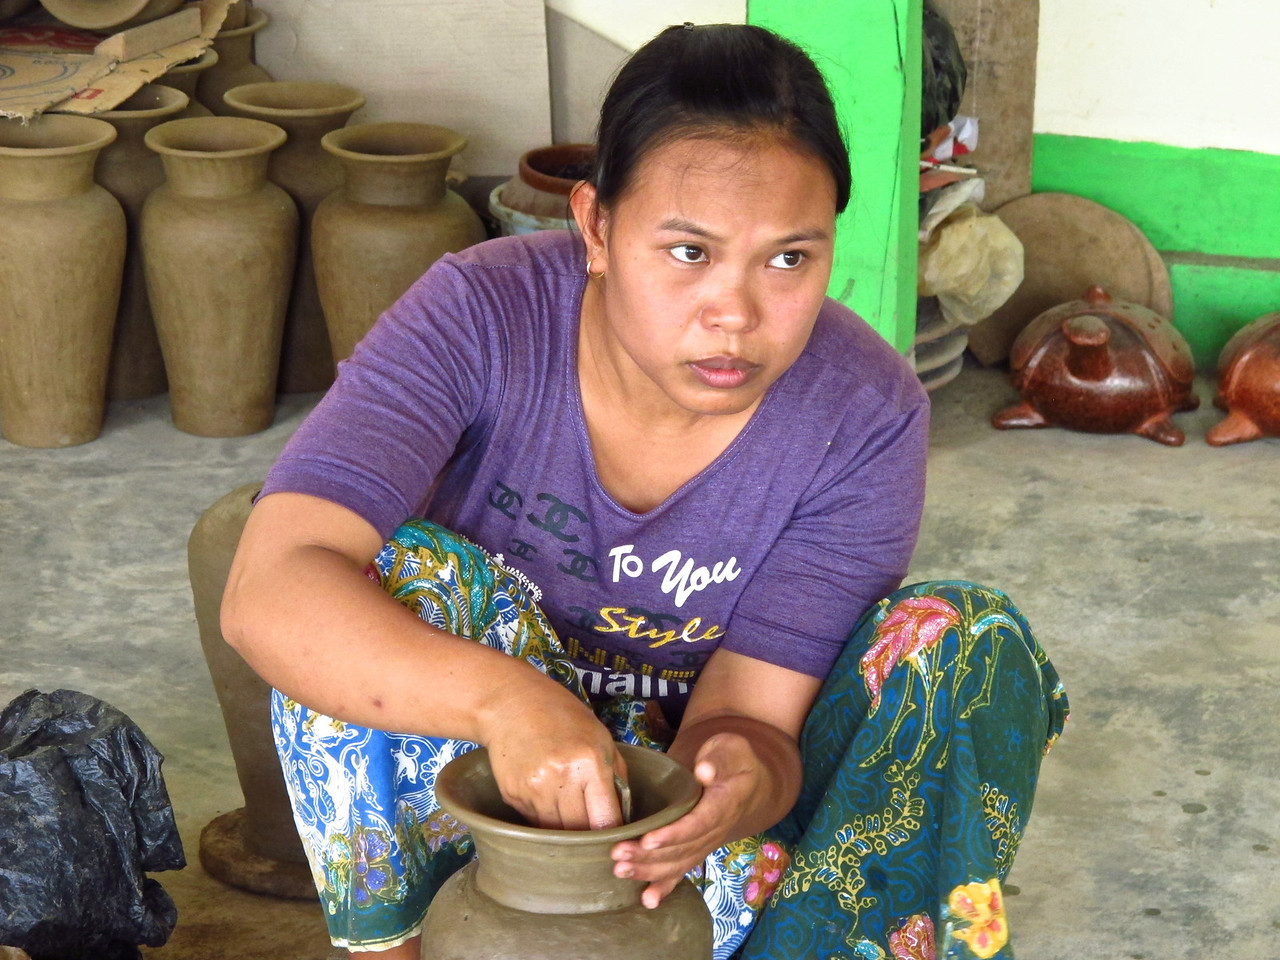 In the villages of Penujak, Banyumulek and Masbagik on Lombok is where you'll find pottery craft. Each village has their own distinct styles and methods. Their pottery products are exported around the world.